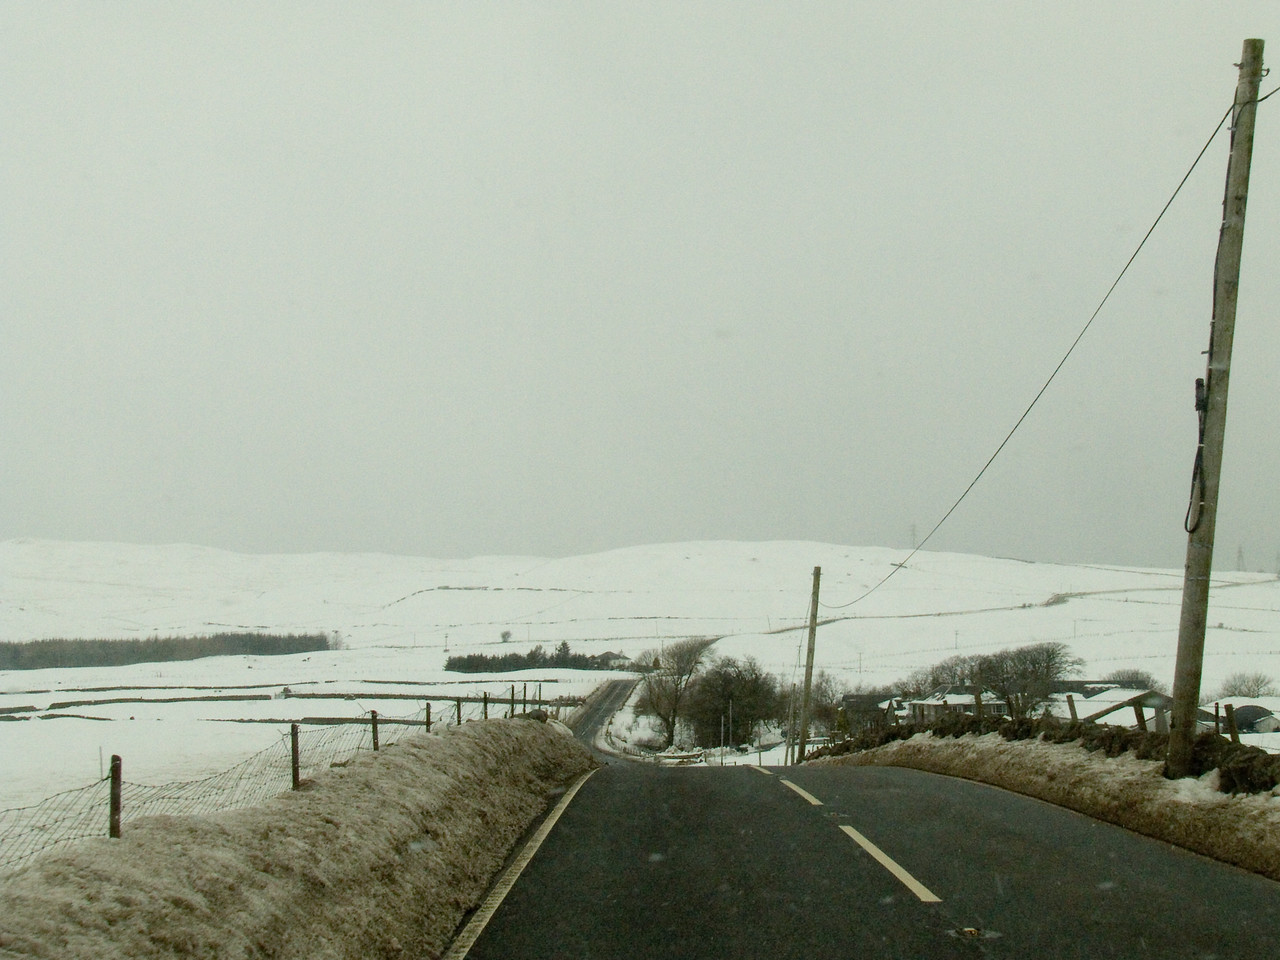 Approaching Auchenfoil Farm on the B788 between Greenock and Kilmacolm